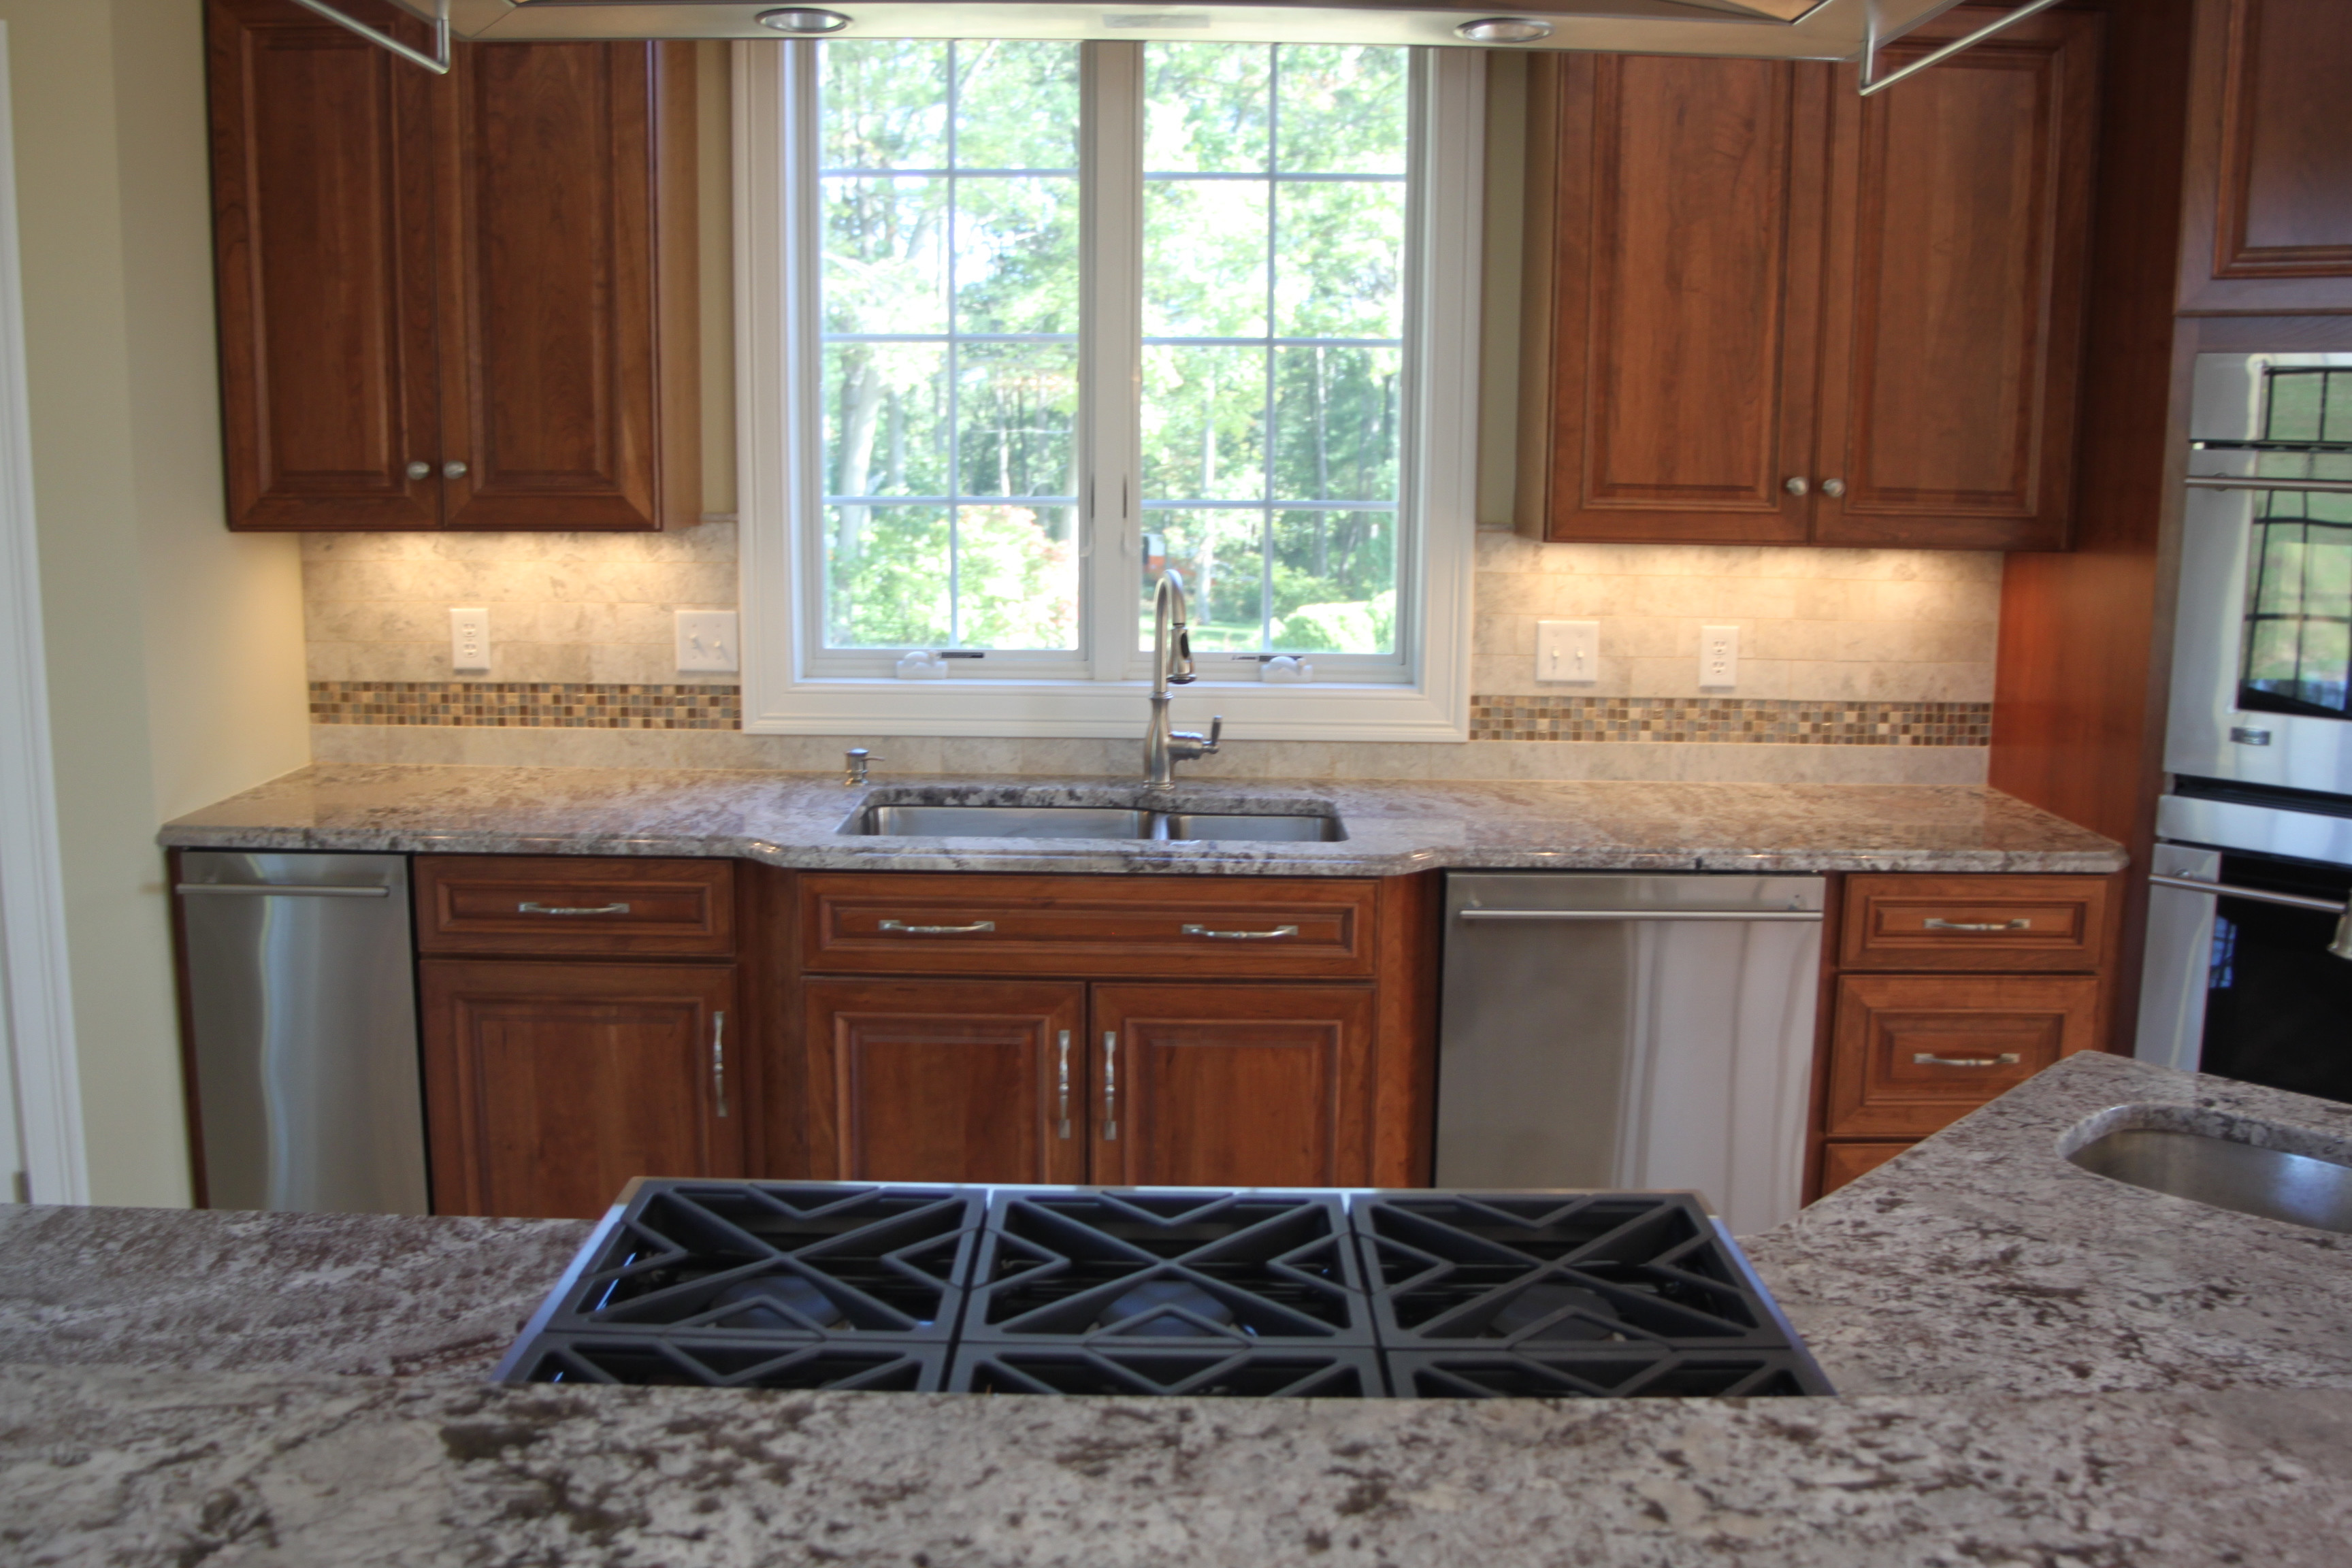 homes with different color hardwood floors of should your flooring match your kitchen cabinets or countertops regarding should your flooring match your kitchen cabinets or countertops